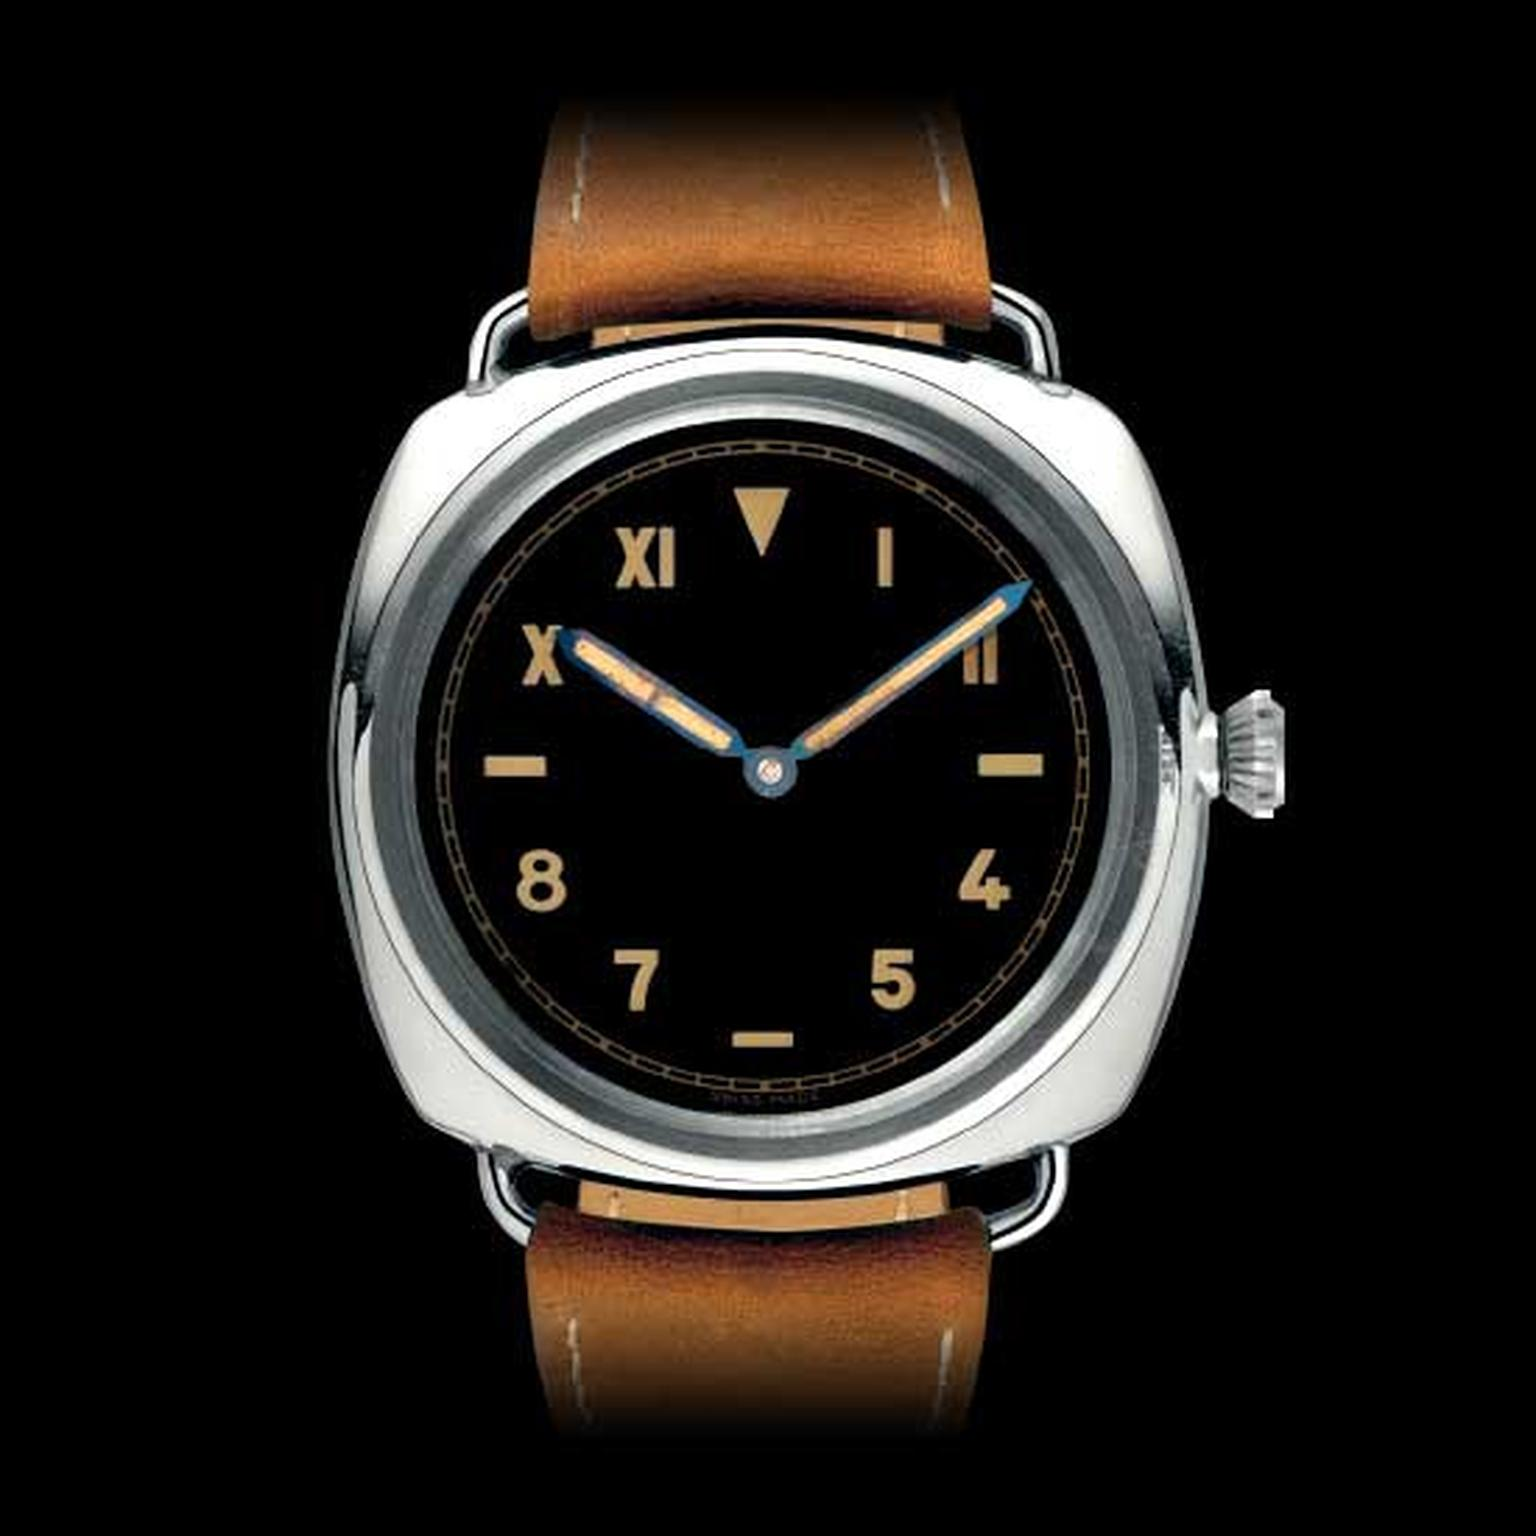 Panerai created 10 prototypes of the 47mm Radiomir in 1936 for Italian frogmen commandos. Panerai's upper hand was thanks to the revolutionary application of luminous material to its instruments, a mixture of radium bromide and zinc sulphide known as Radi